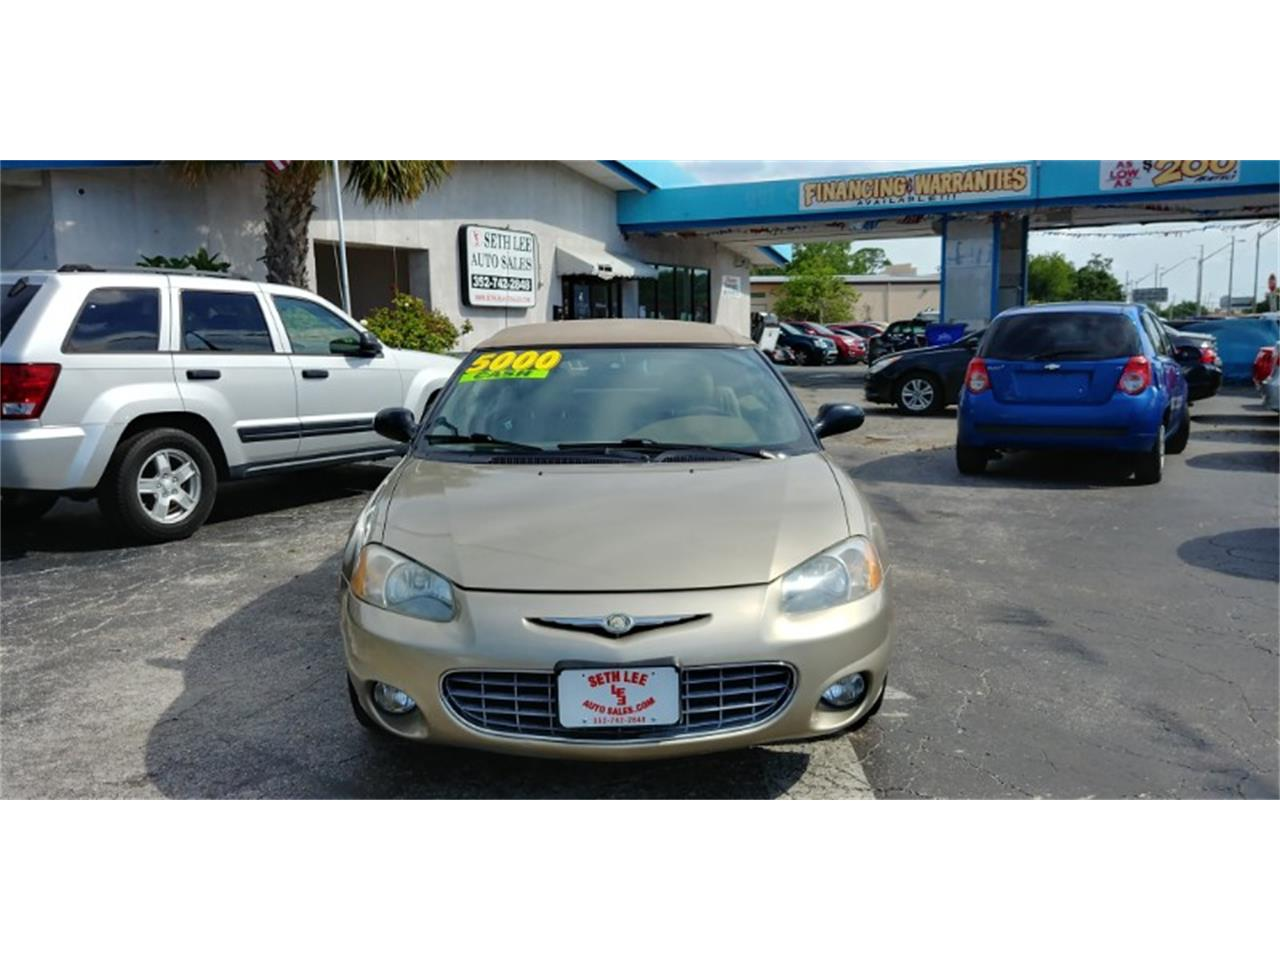 Large Picture of 2002 Chrysler Sebring located in Florida - $4,999.00 Offered by Seth Lee Auto Sales - PVE5